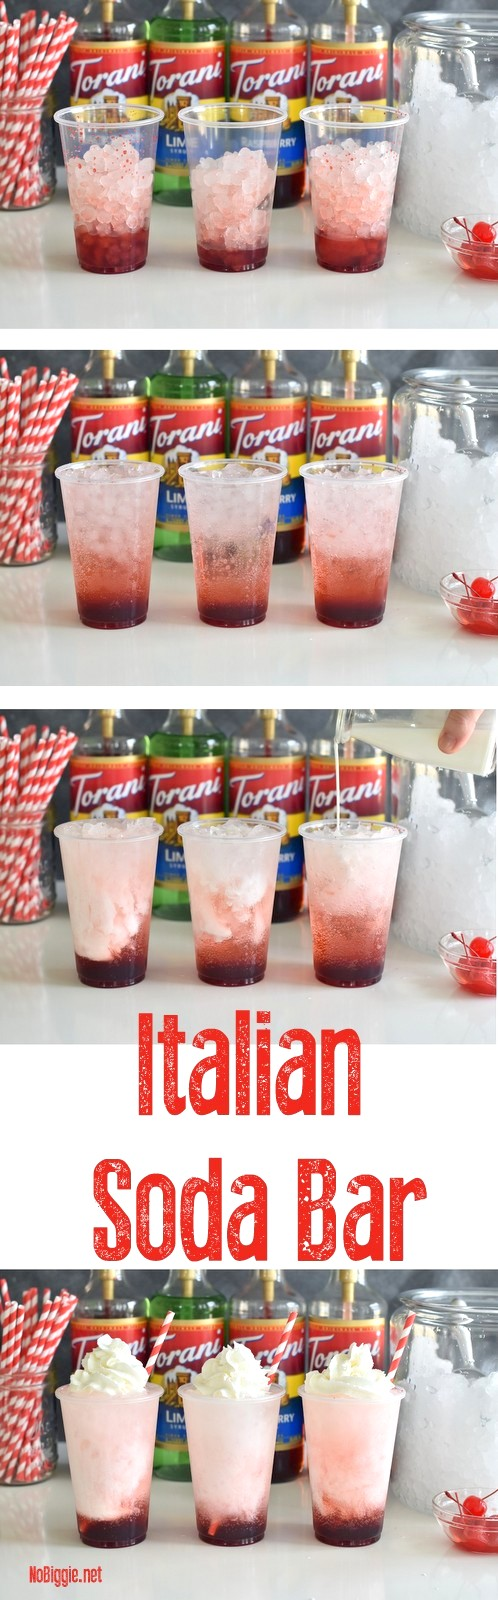 DIY Italian Soda Bar - a fun interactive drink station everyone will love! Try it for your next party. #summerdrinks #italiansodabar #torani #toranisyrups #sodabars